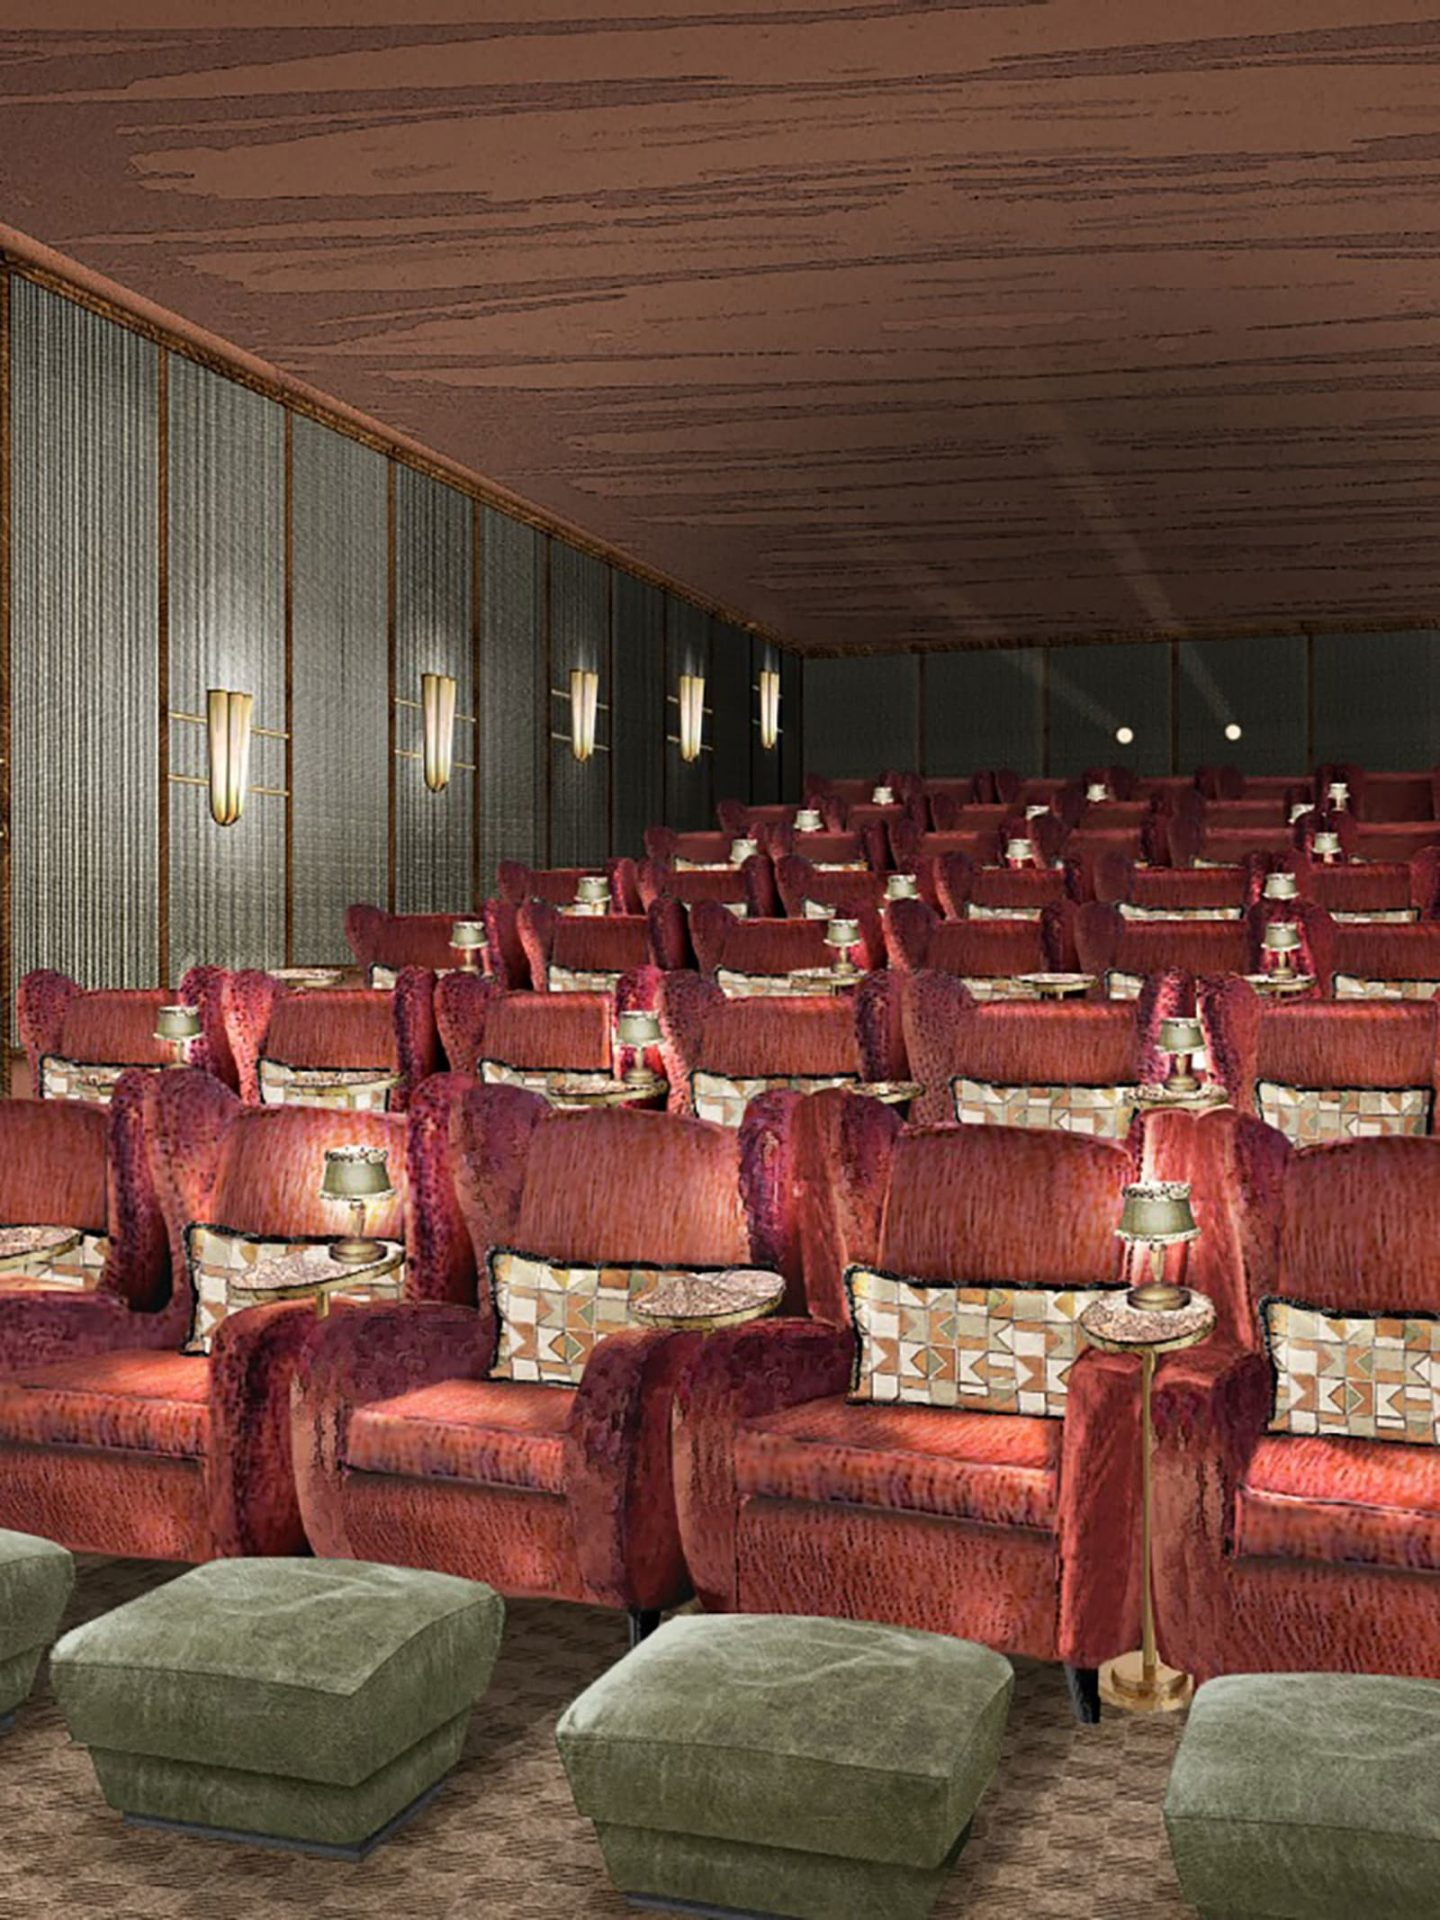 Interior render of cinema